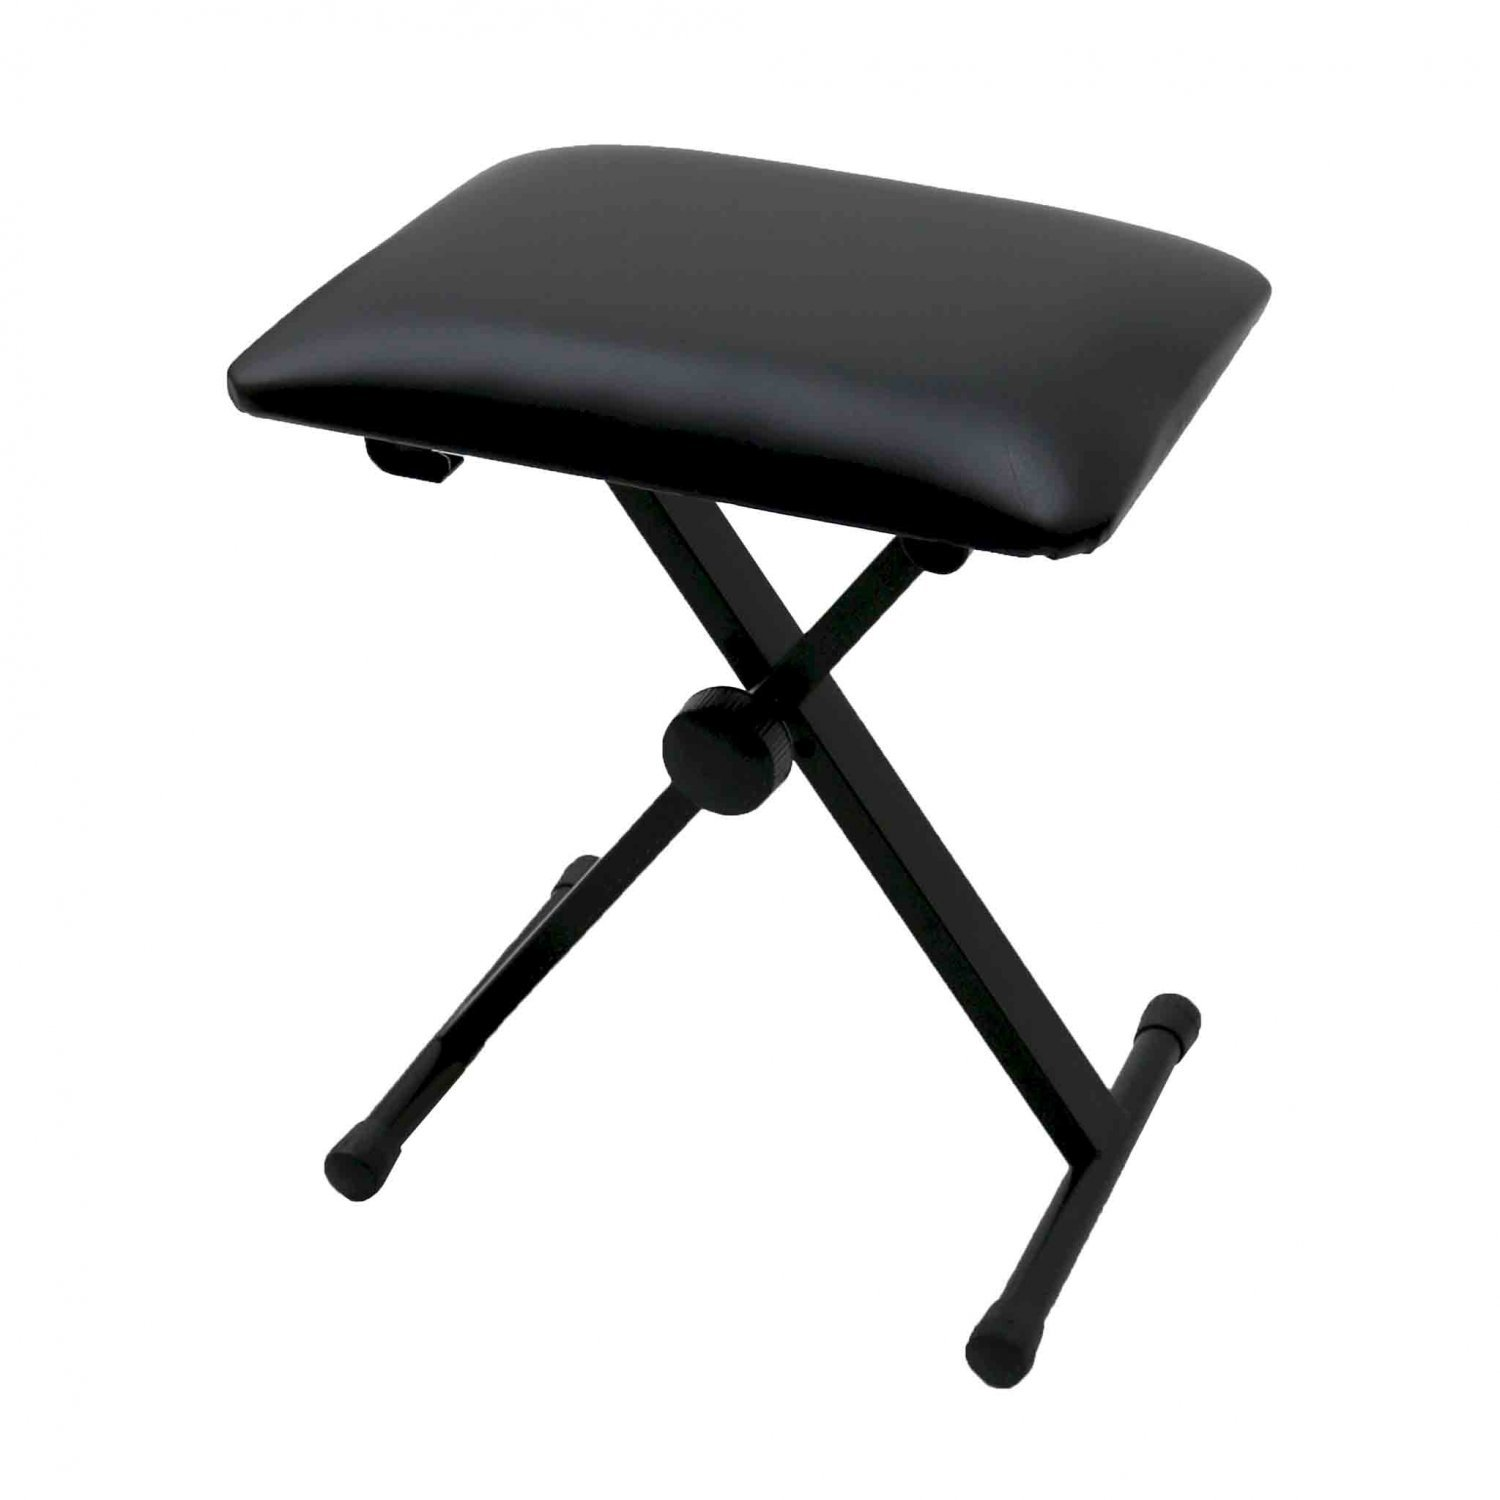 Keyboard Chair Keyboard Piano Bench Stool Seat Chair Throne Adjustable Portable